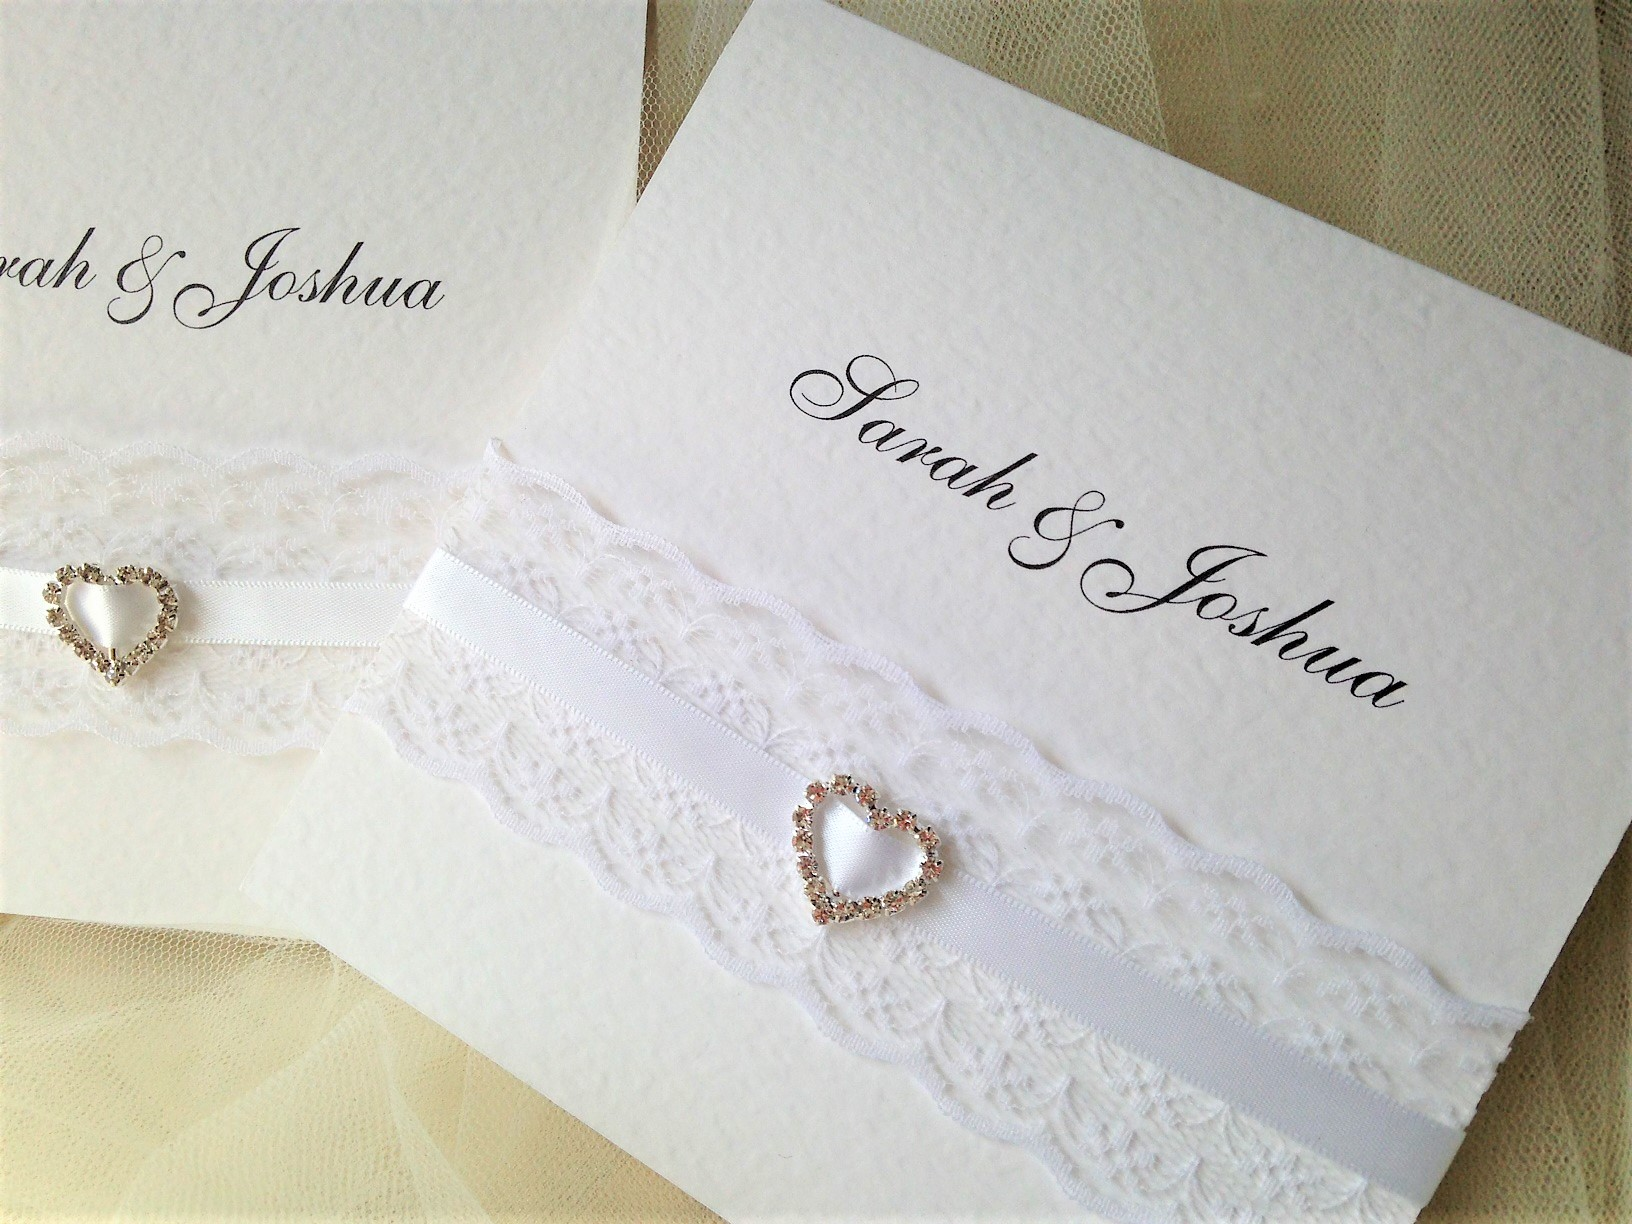 Wedding Invitations England: Ribbon And Lace Pocketfold Wedding Invitations